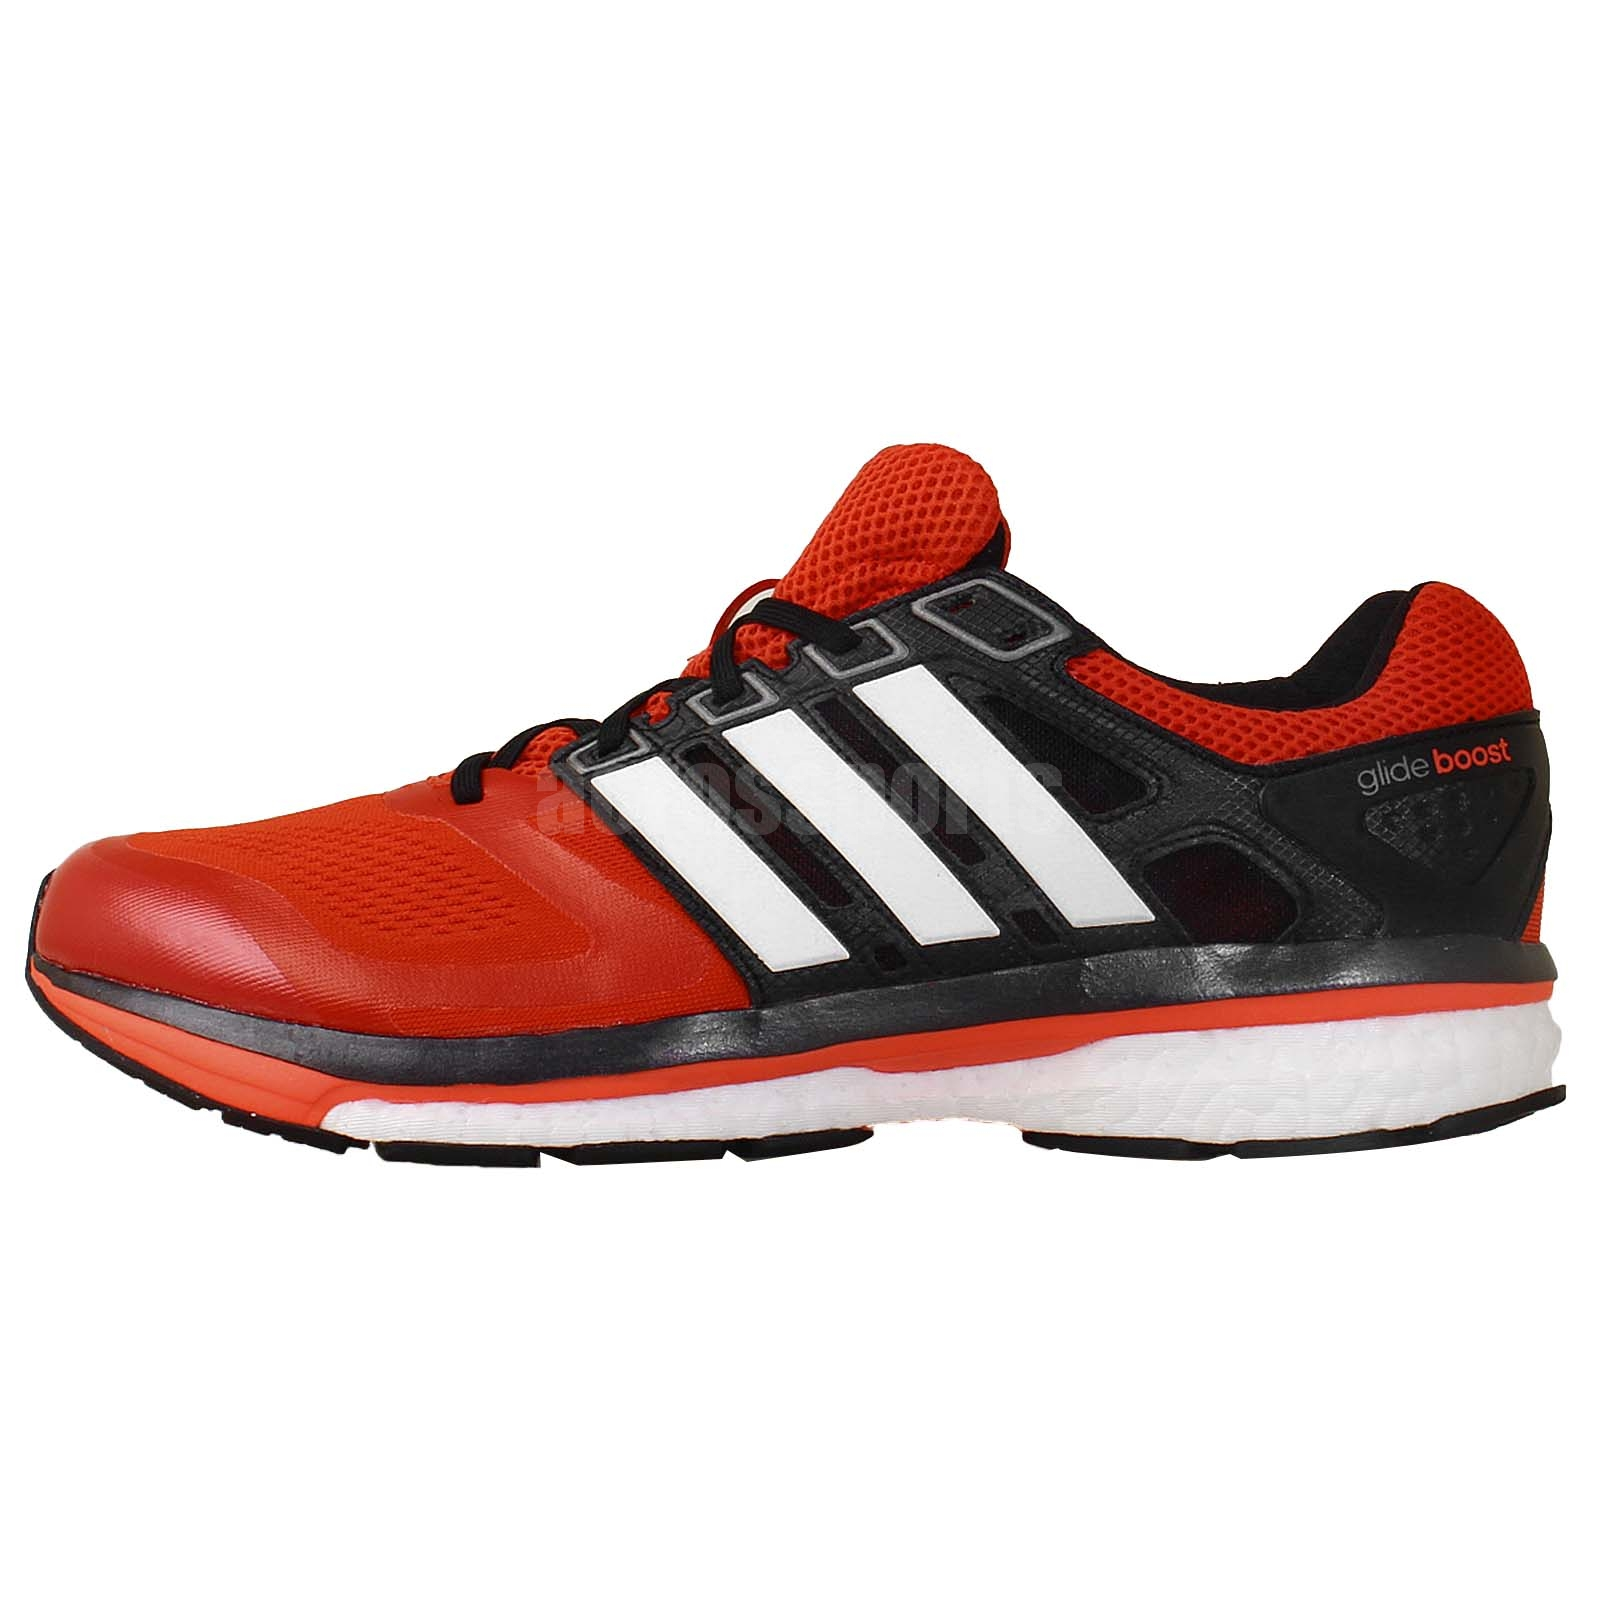 Adidas Supernova Glide 6 M Orange Black Mens Running Shoes Sneakers M17426